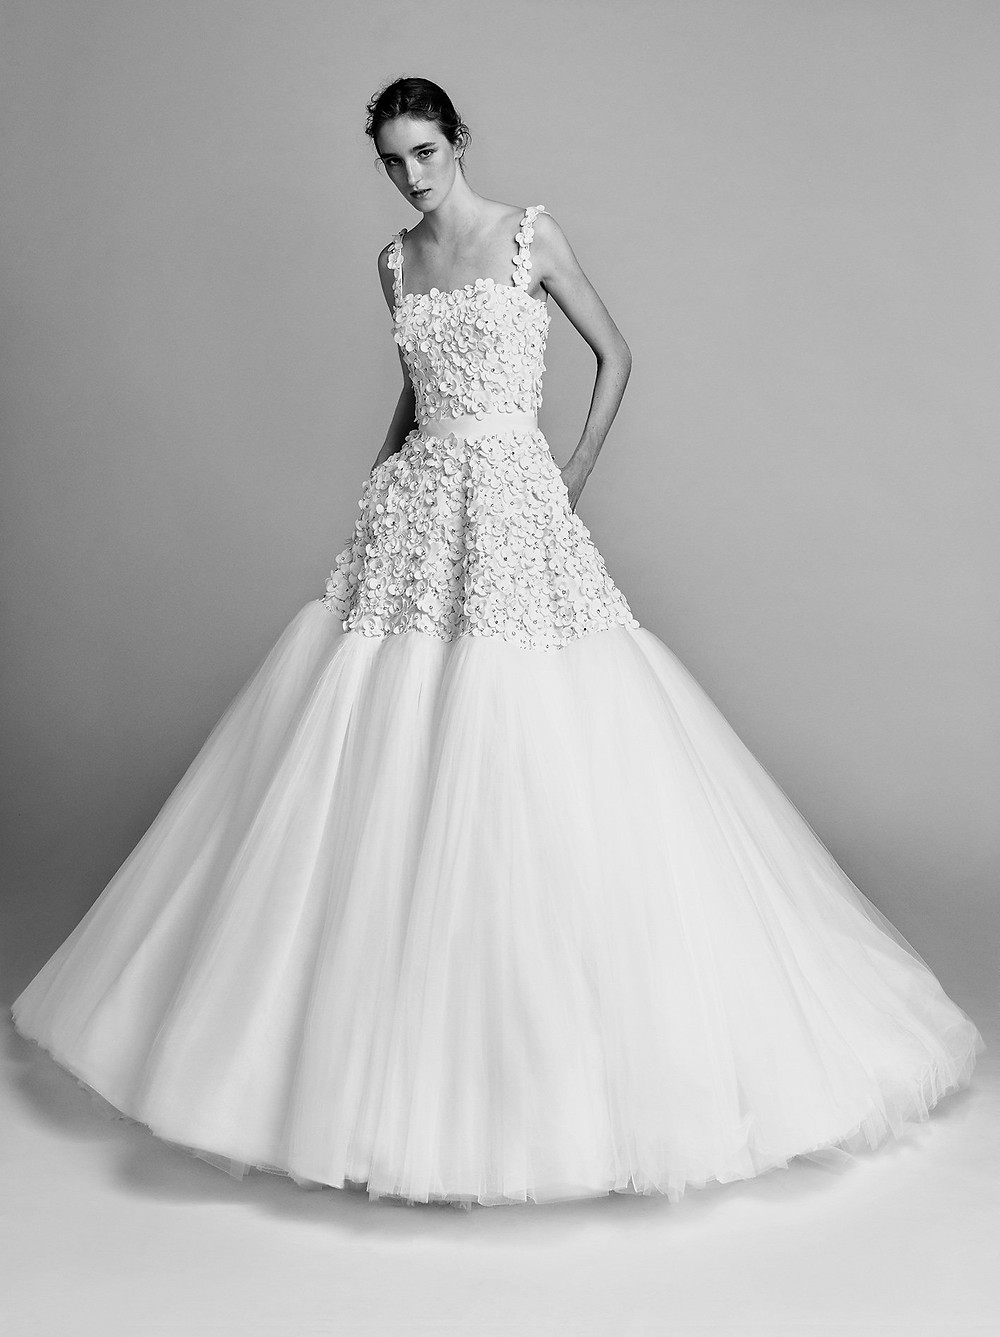 A Viktor & Rolf tulle ball gown wedding dress with pockets and flowers